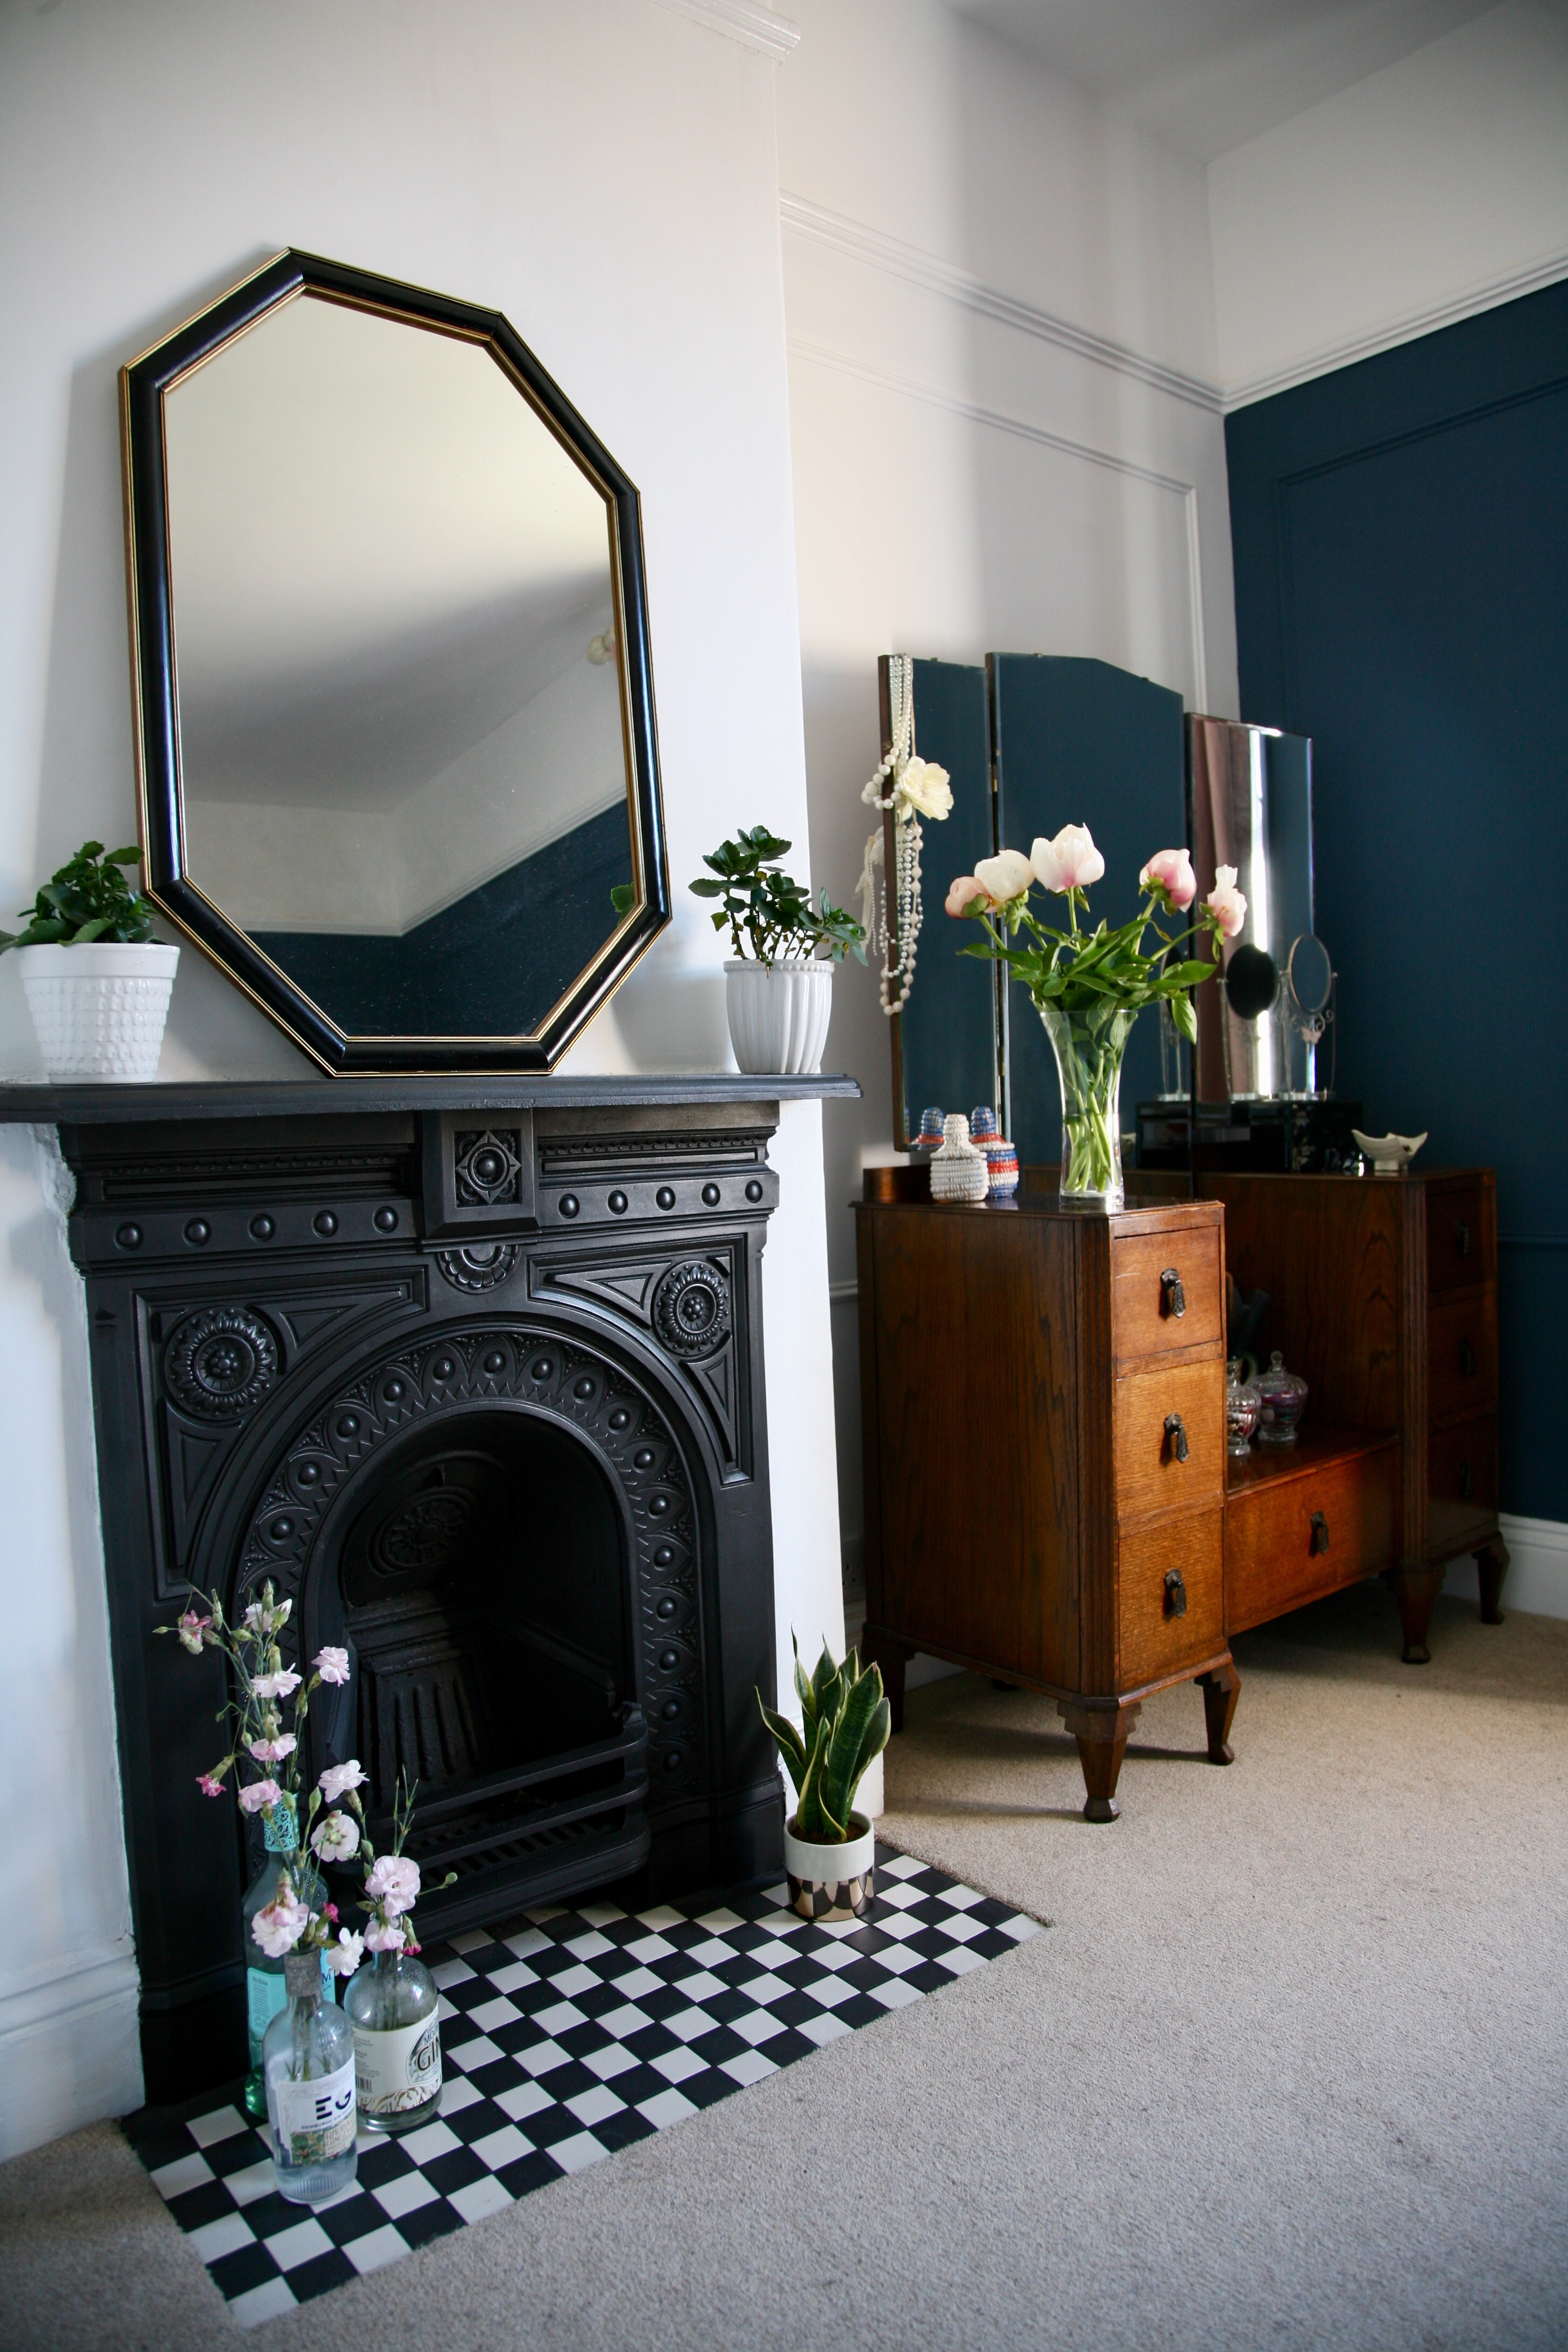 Cast iron fireplace with monochrome tiles in the hearth